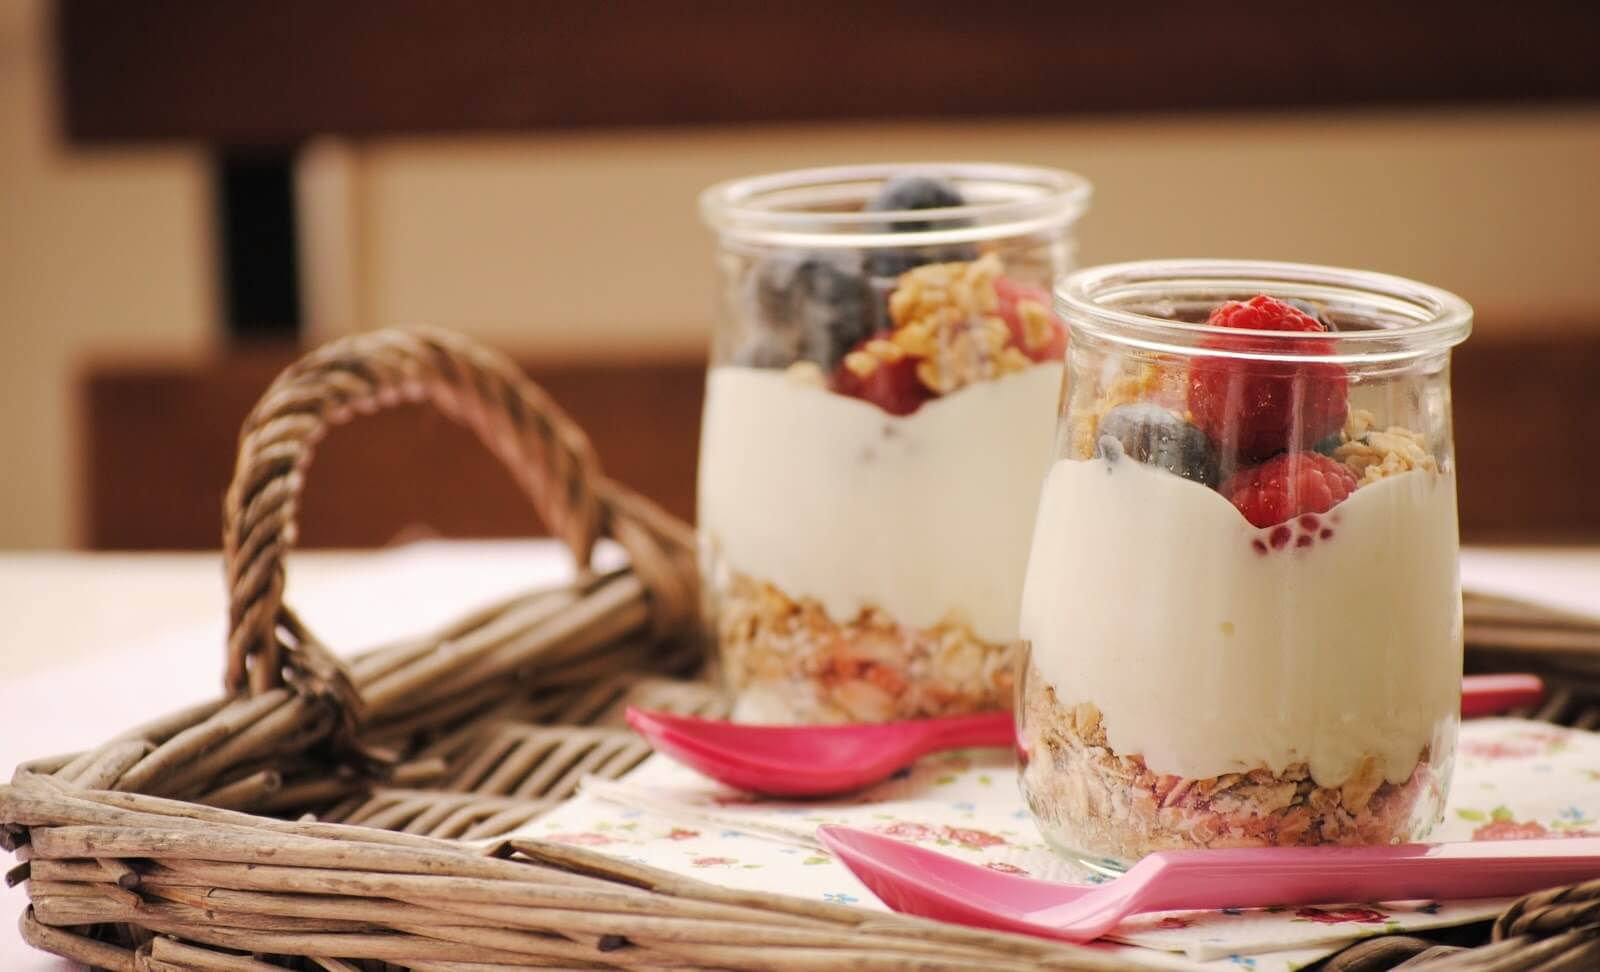 yogurt parfait breakfast on a tray